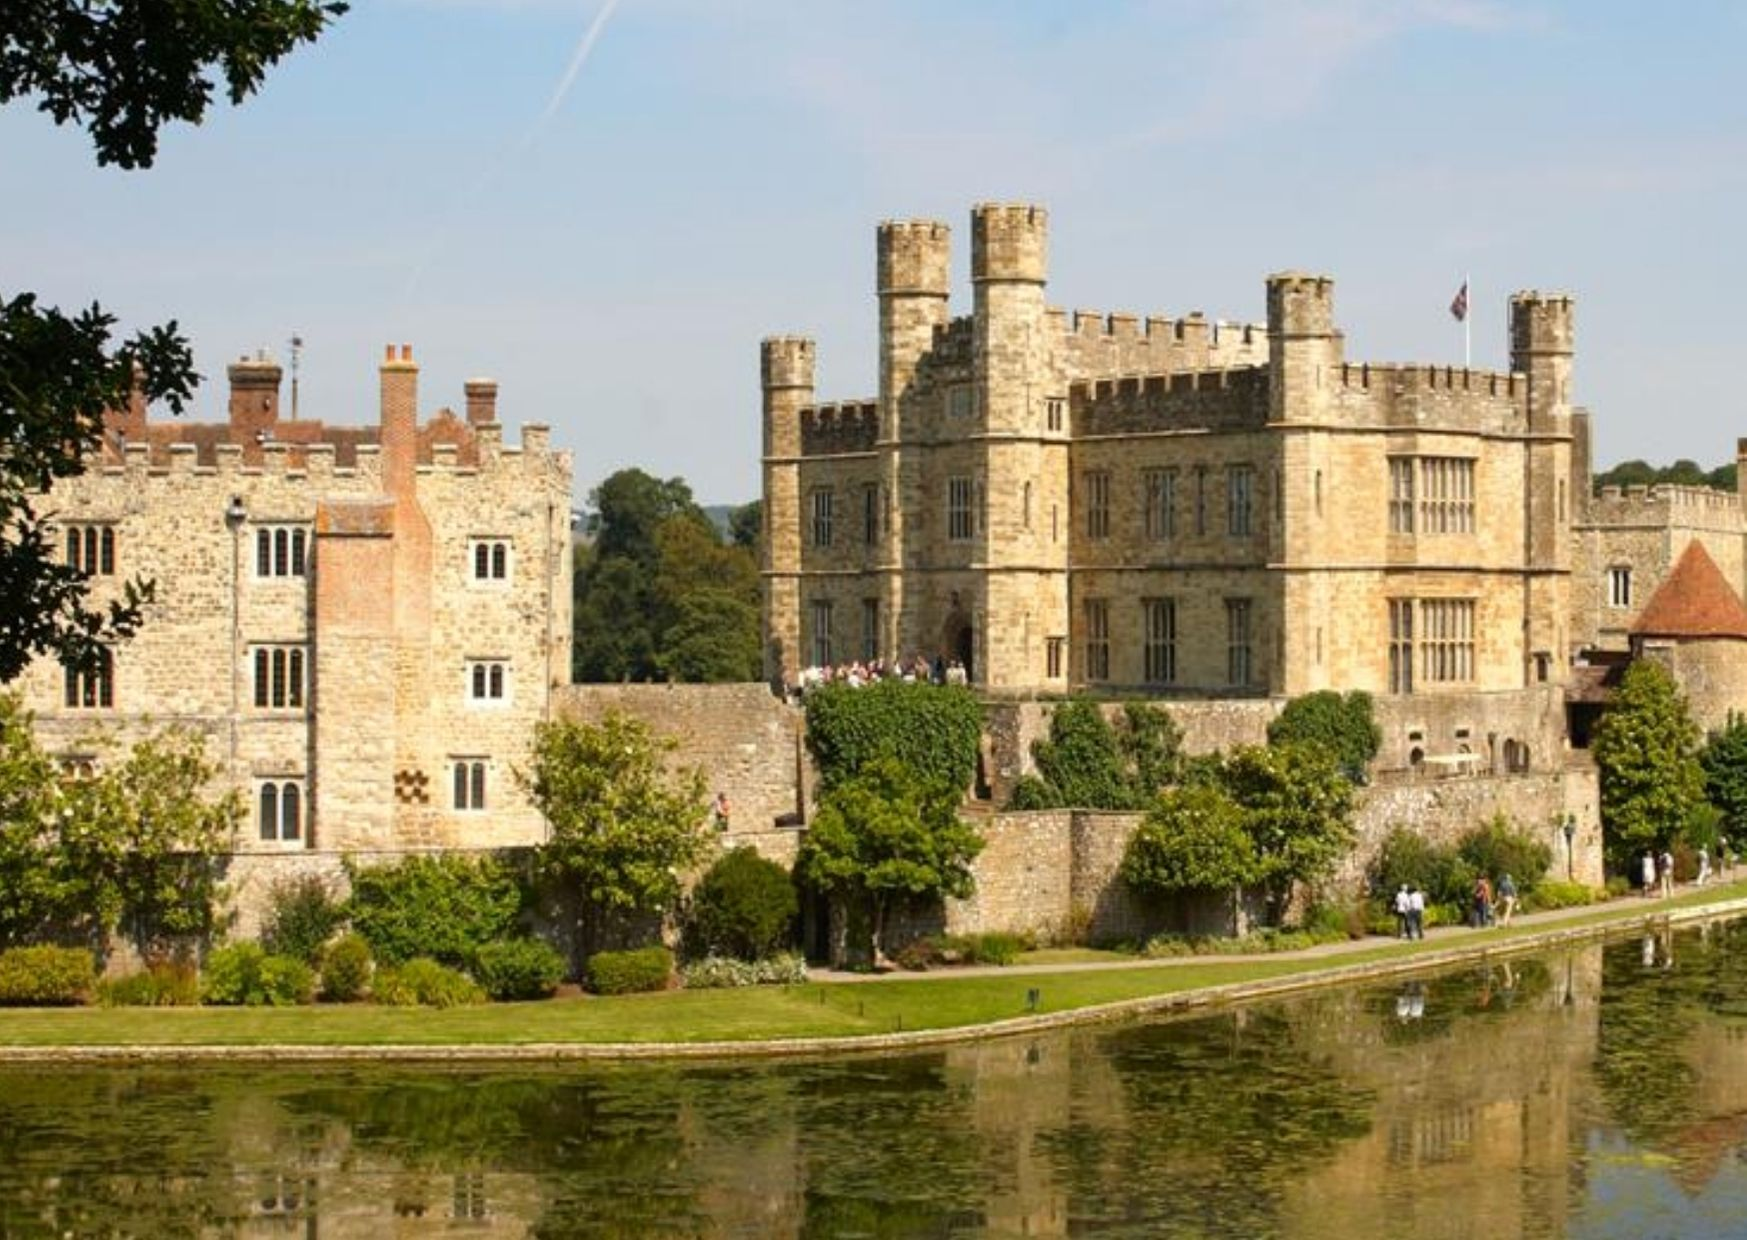 Transfer from London to Canterbury Cathedral and Leeds Castle